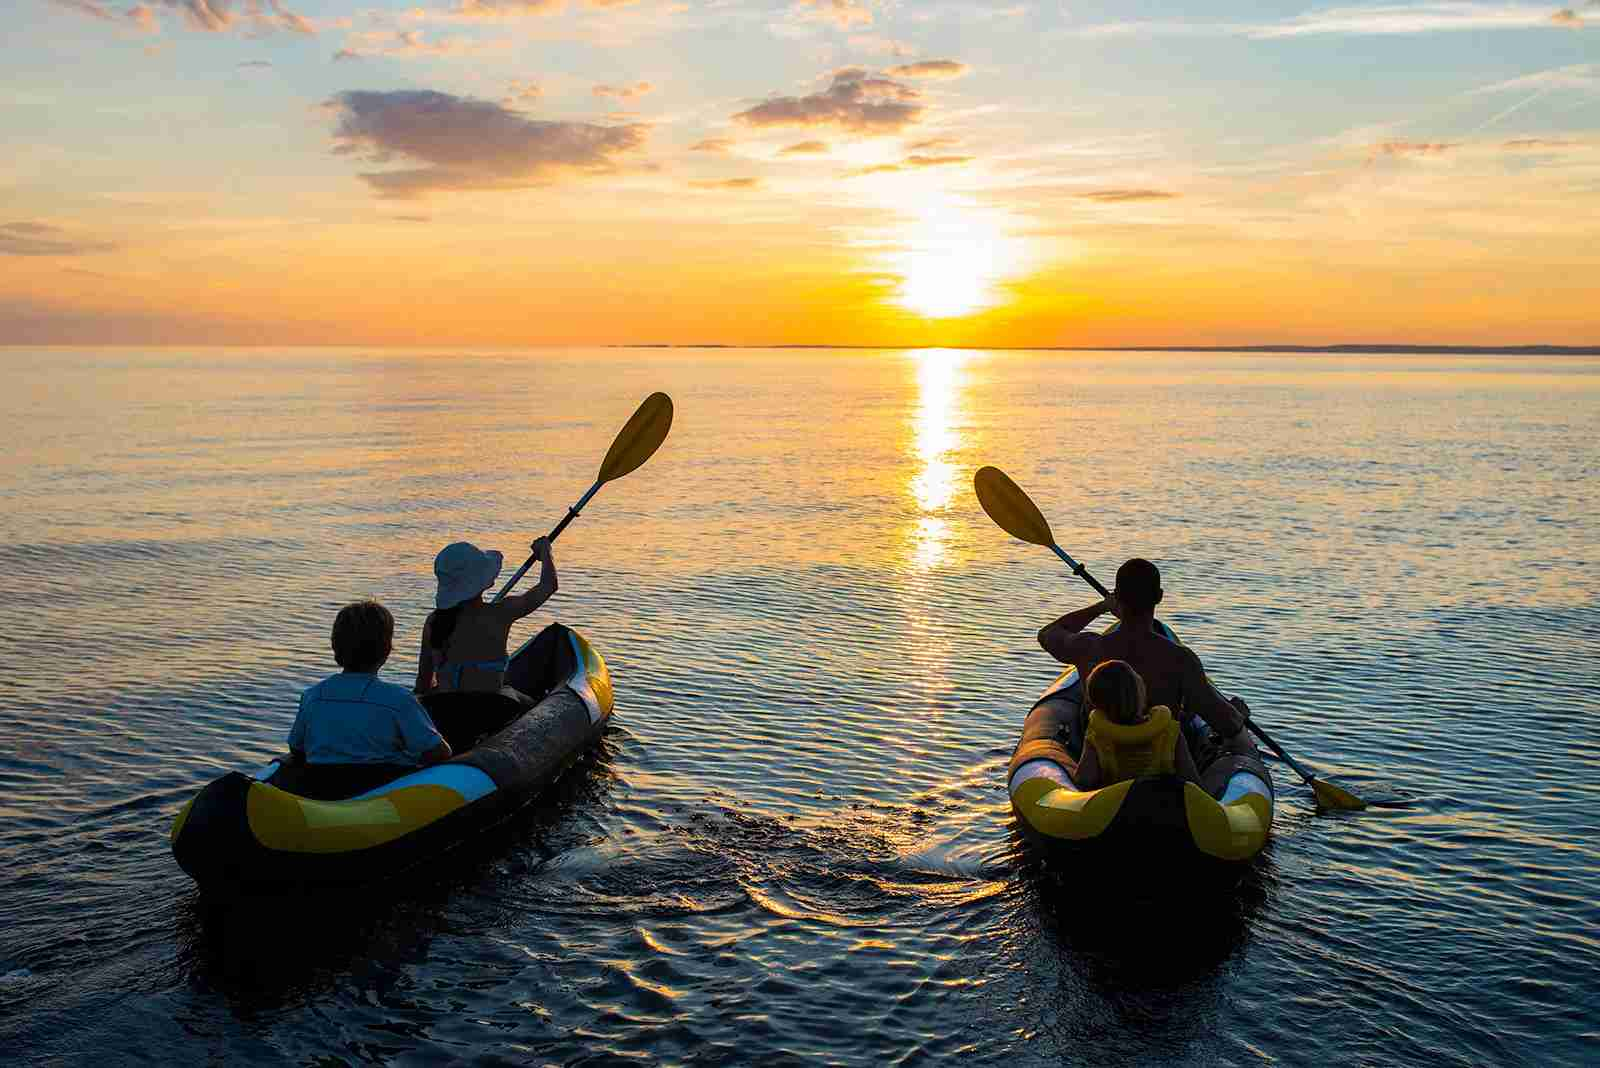 Family enjoying the sunset kayak tour. (Photo by simonkr/ Getty Images)